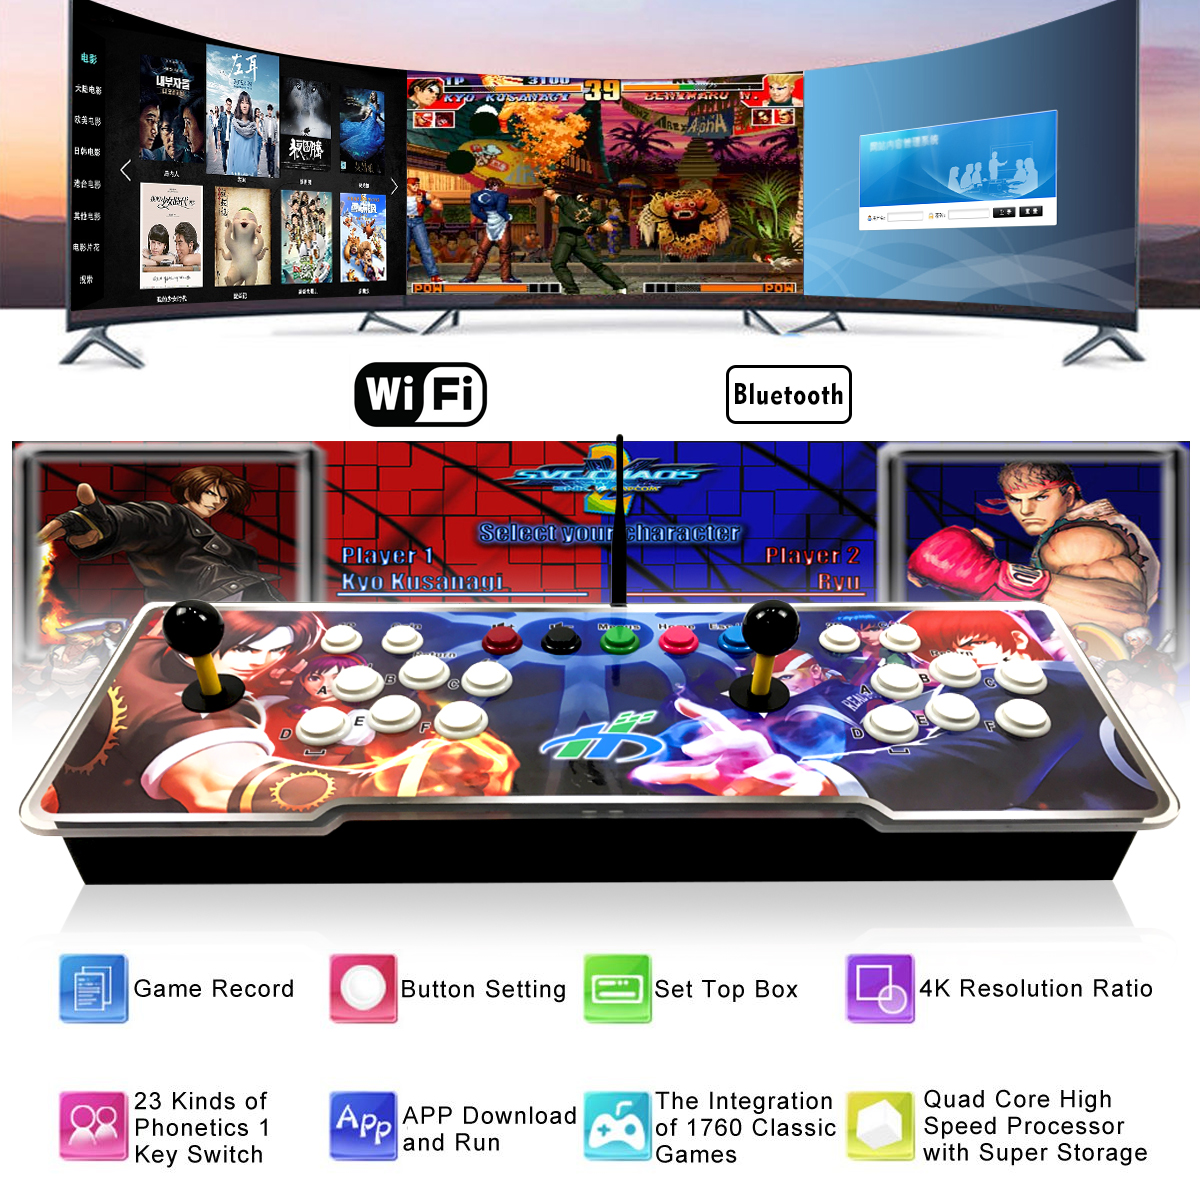 1760 in 1 Dual Player 1GB RAM 16GB ROM Android 5.1 bluetooth 2.4G WIFI Arcade Game Console TV Box